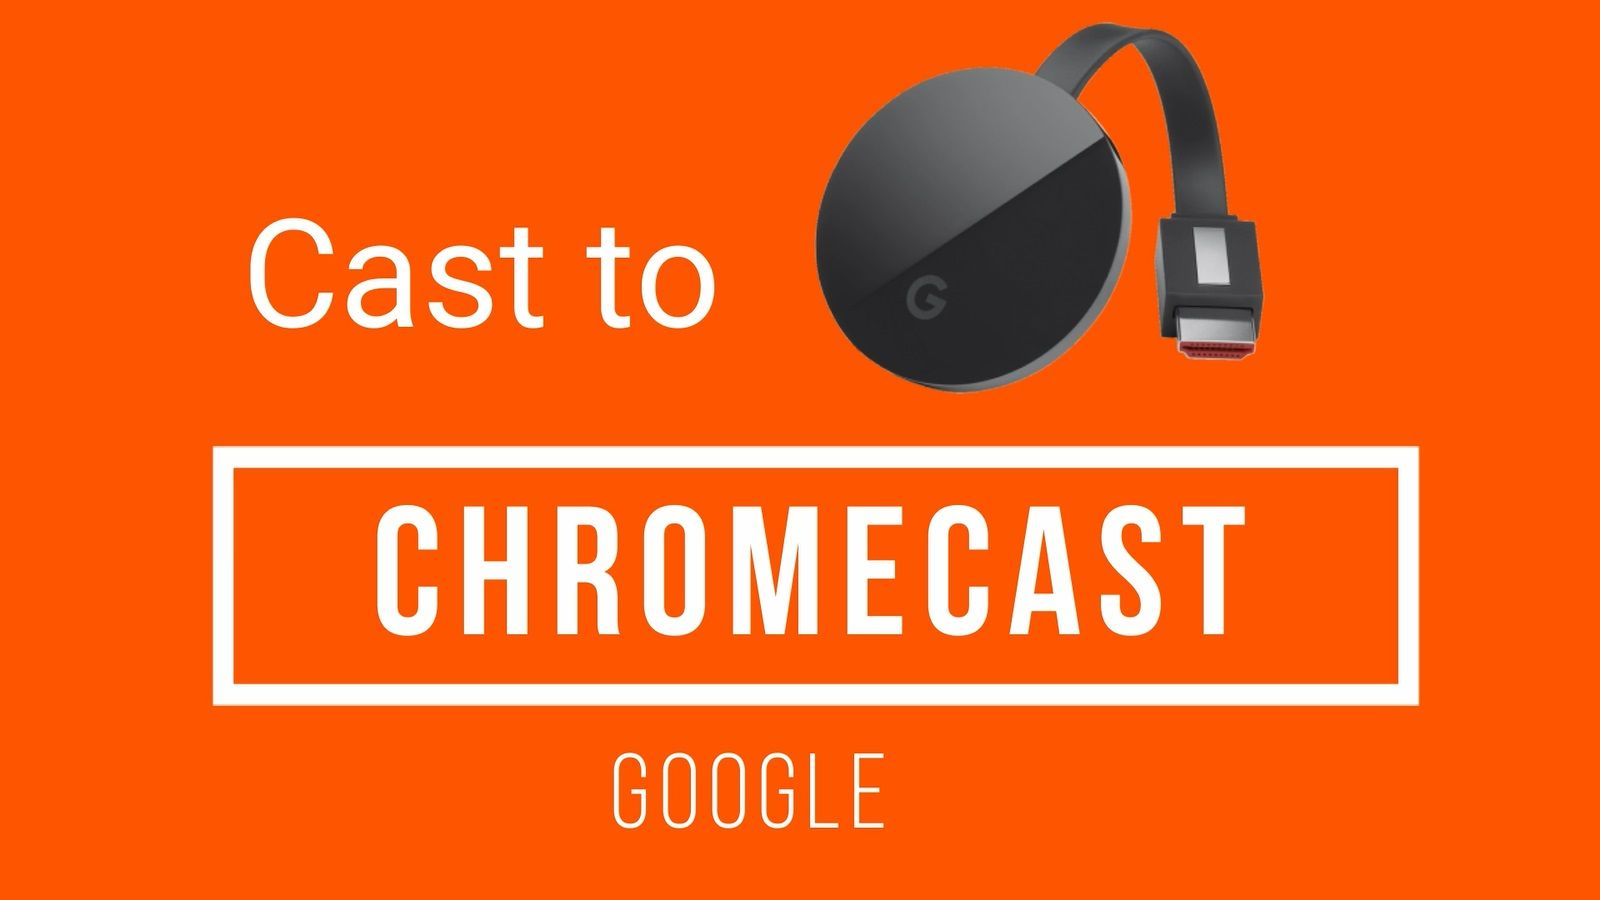 Cast Videos From Iphone Ipad To Chromecast Best Free